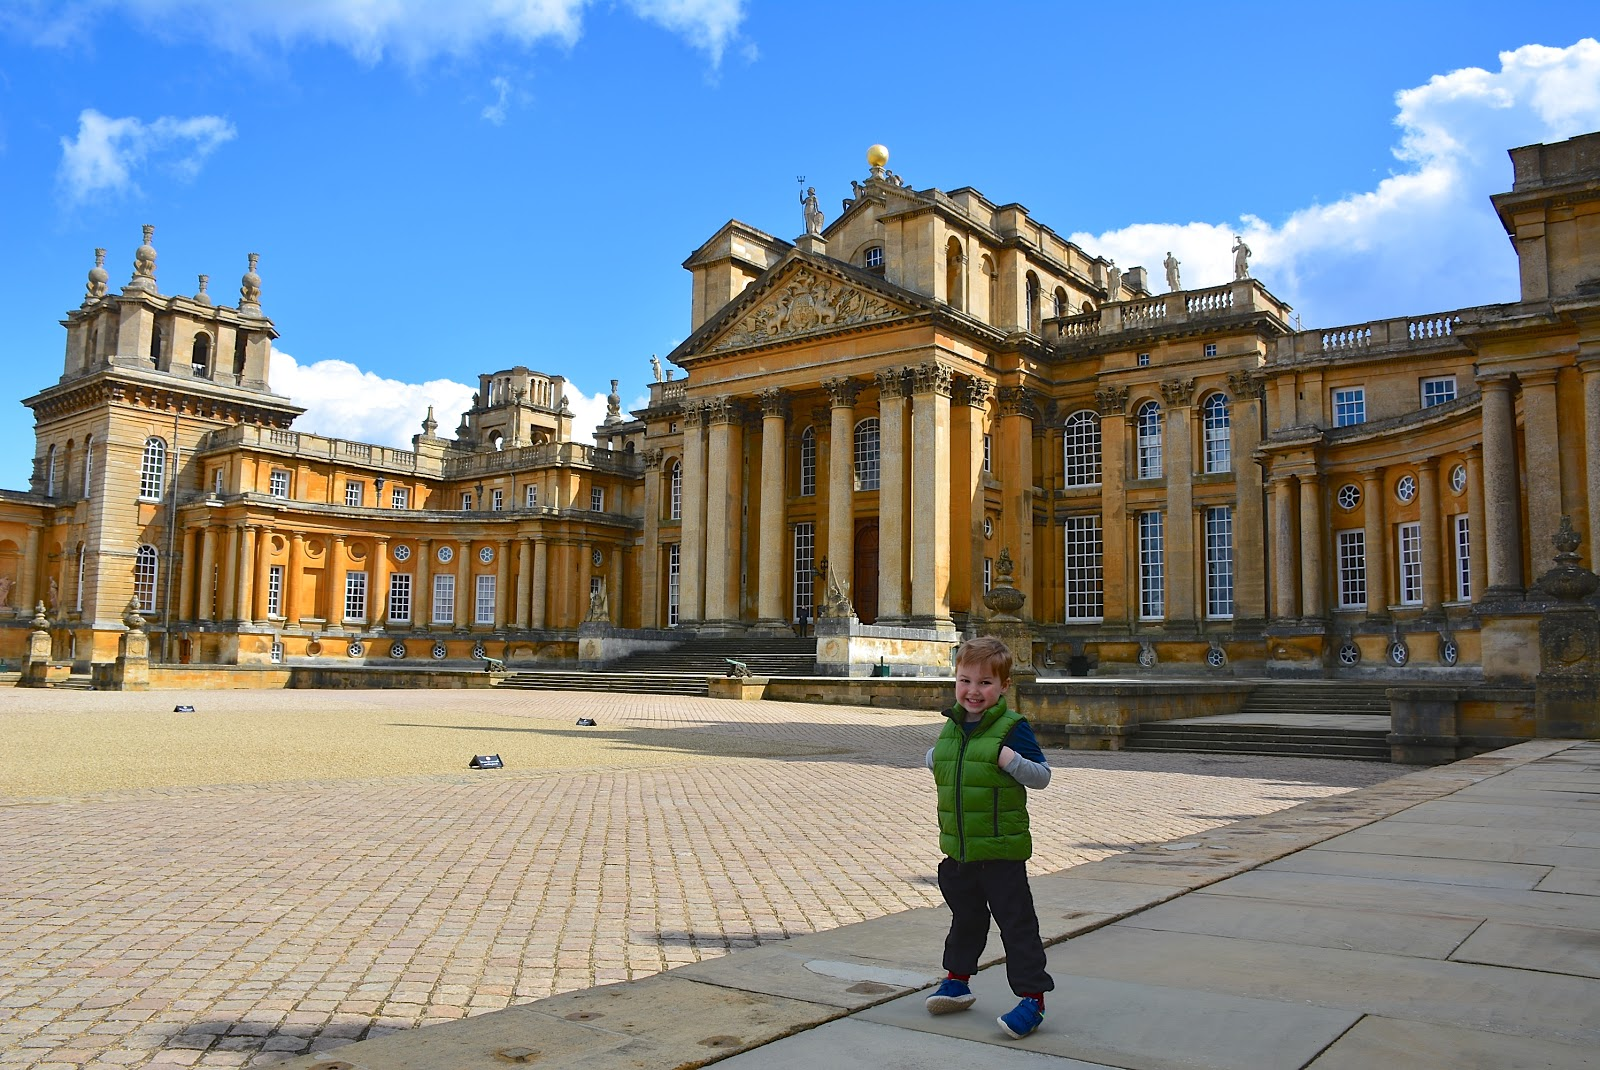 Exterior facade of Blenheim Palace